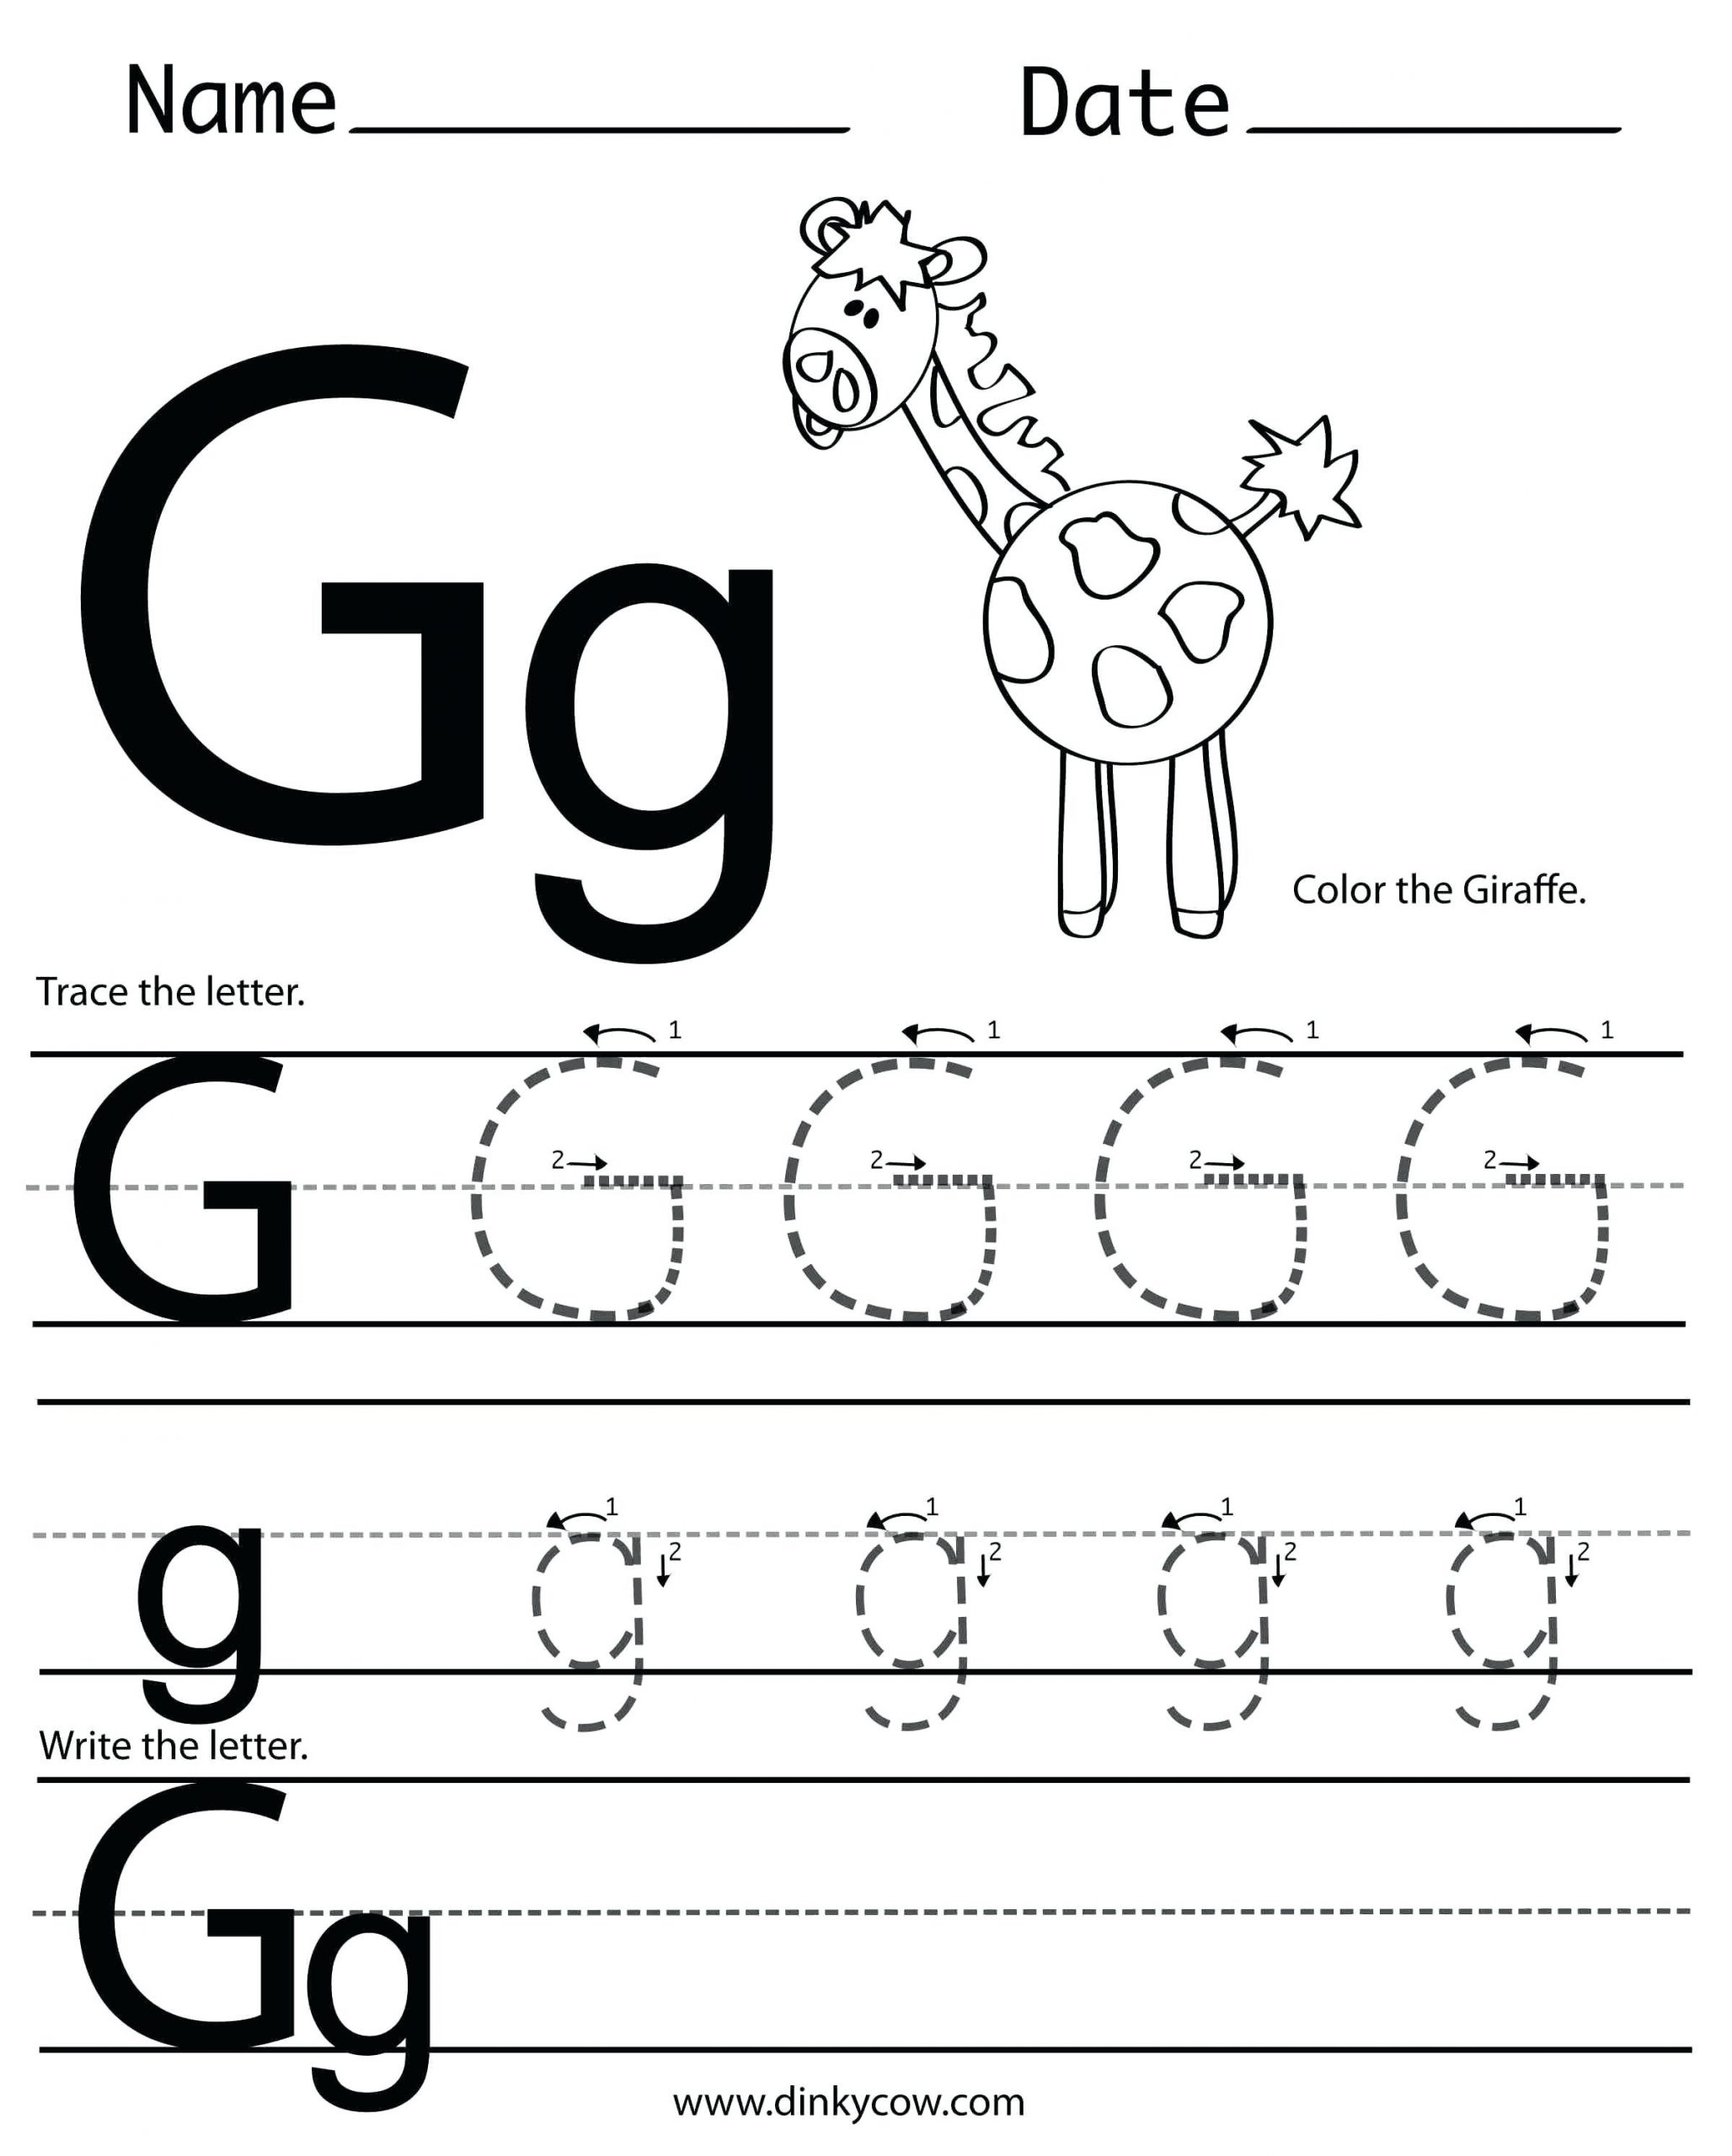 Letter G Worksheets Preschool Letter G Preschool Preschool Letter the Week G Craft